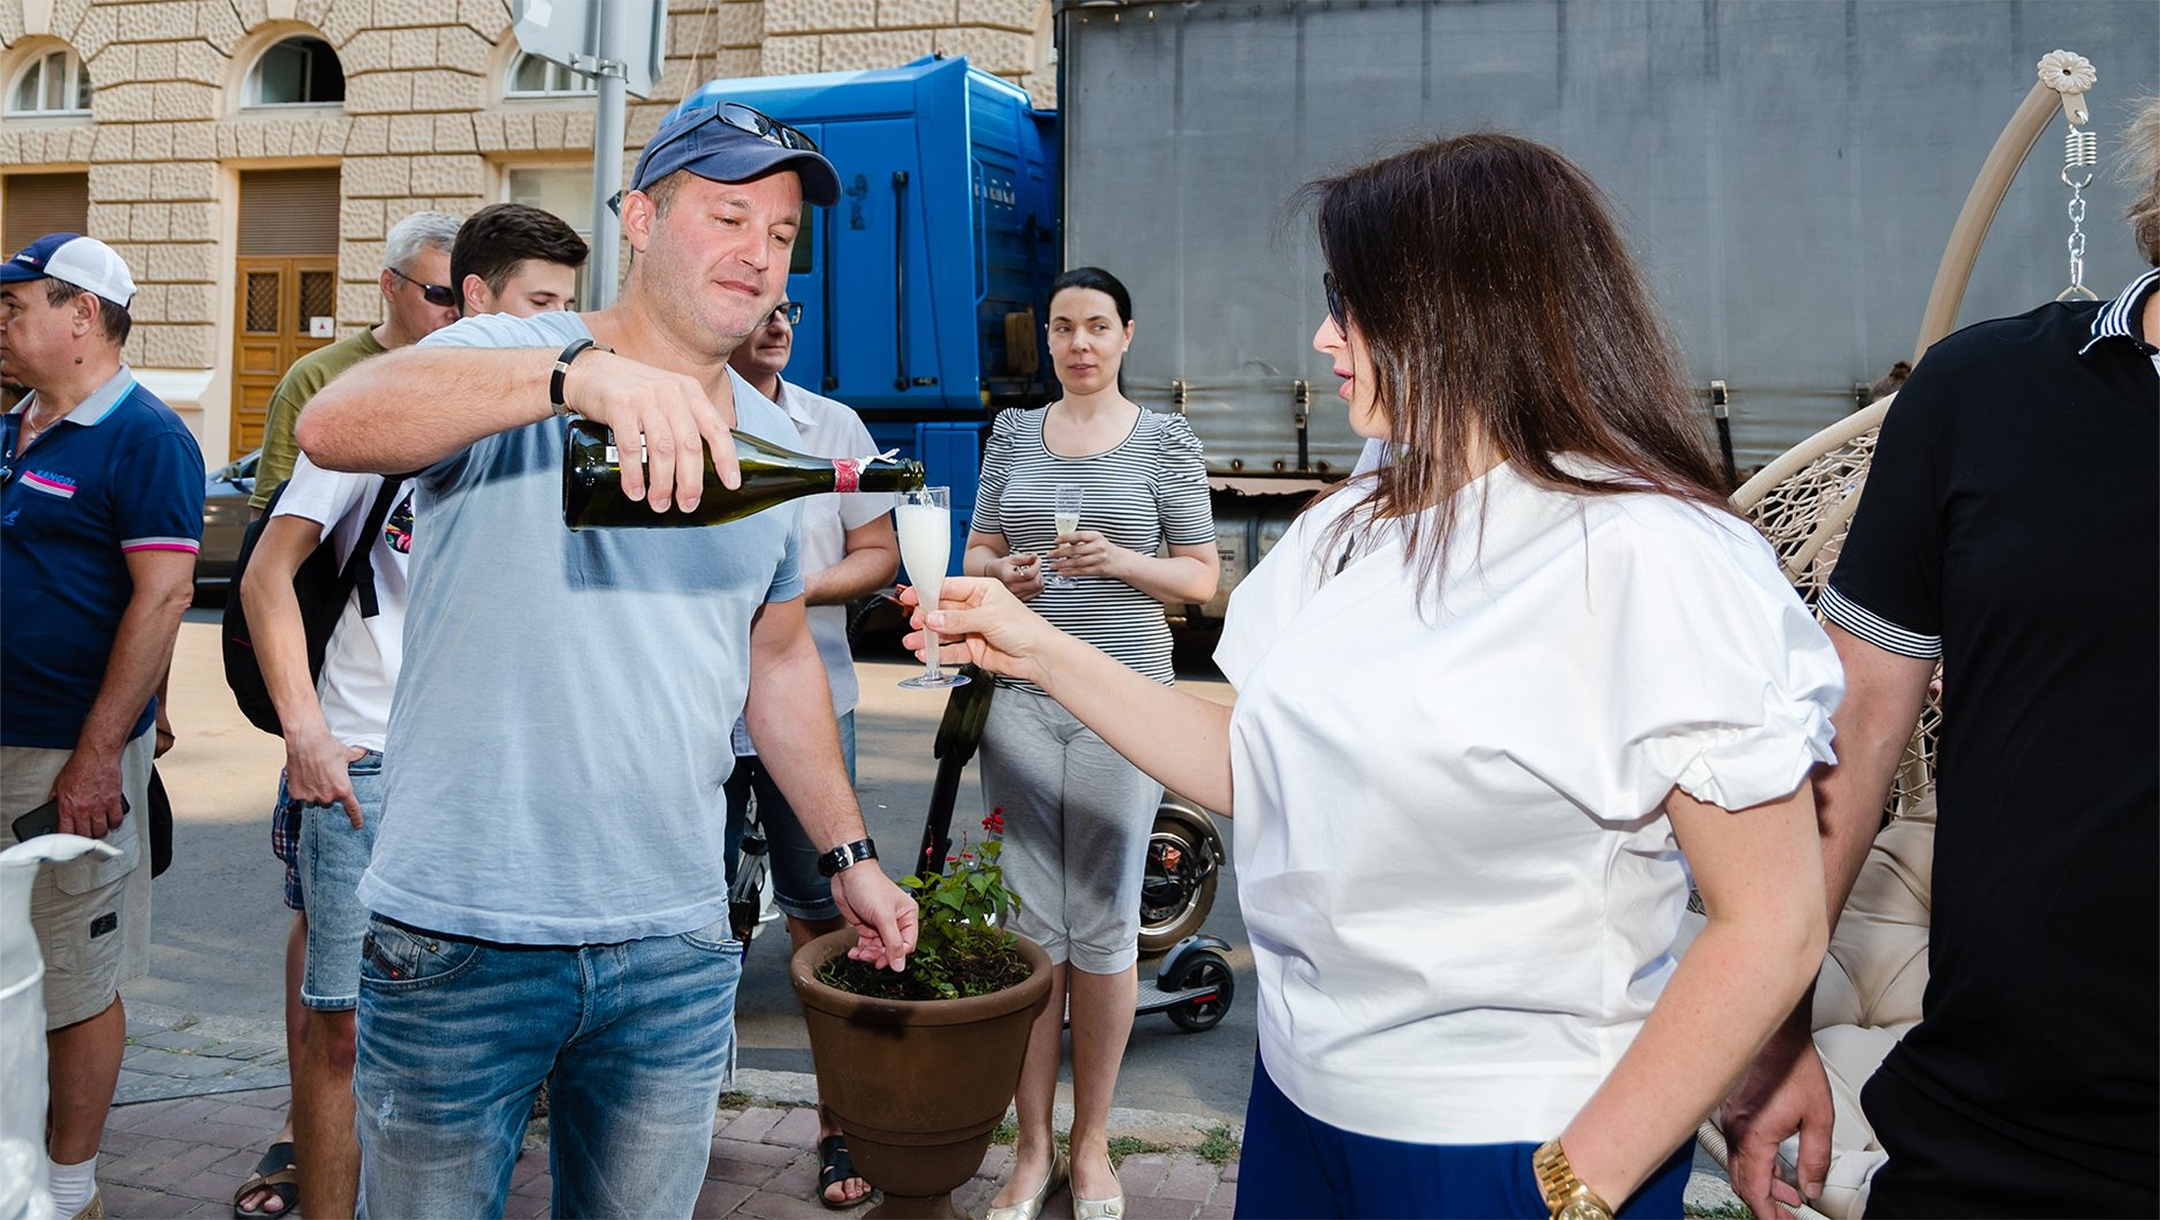 David Roitman pouring bubbly for a patron outside Kosher Bar in Odessa, Ukraine on Sept. 1, 2019. (Courtesy of Kosher Bar)